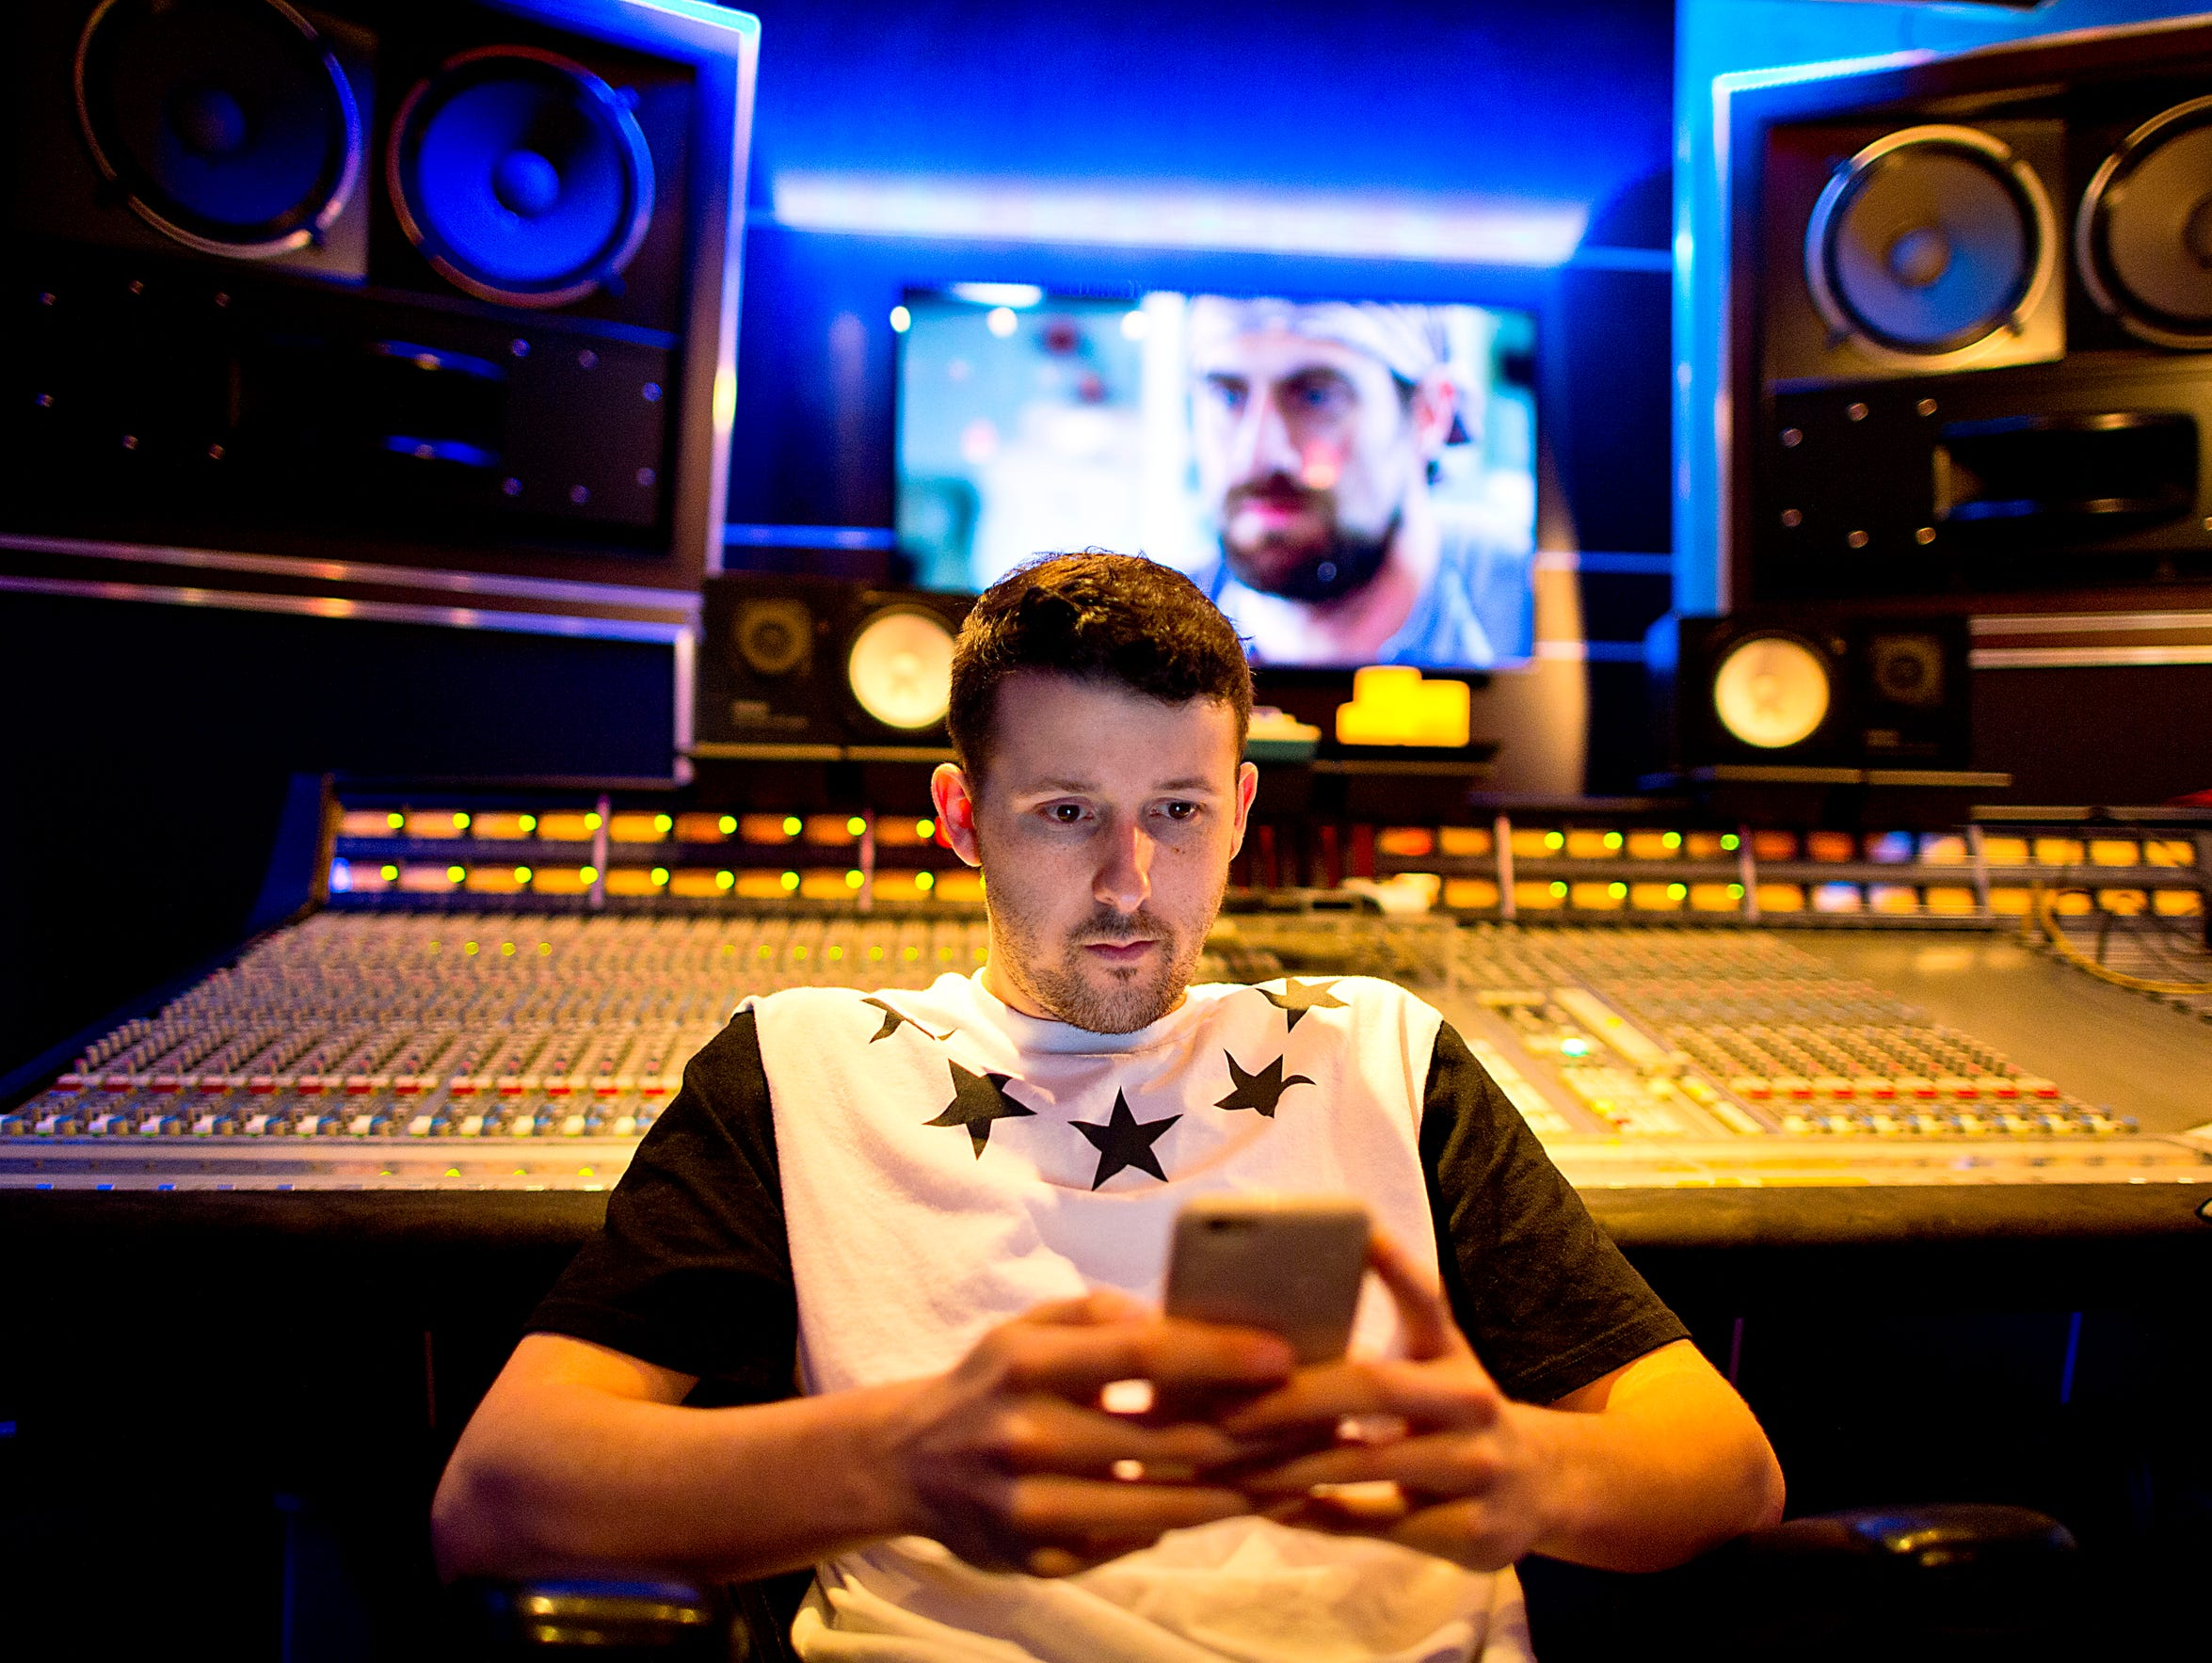 Music producer and hip-hop artist Andrew Hypes